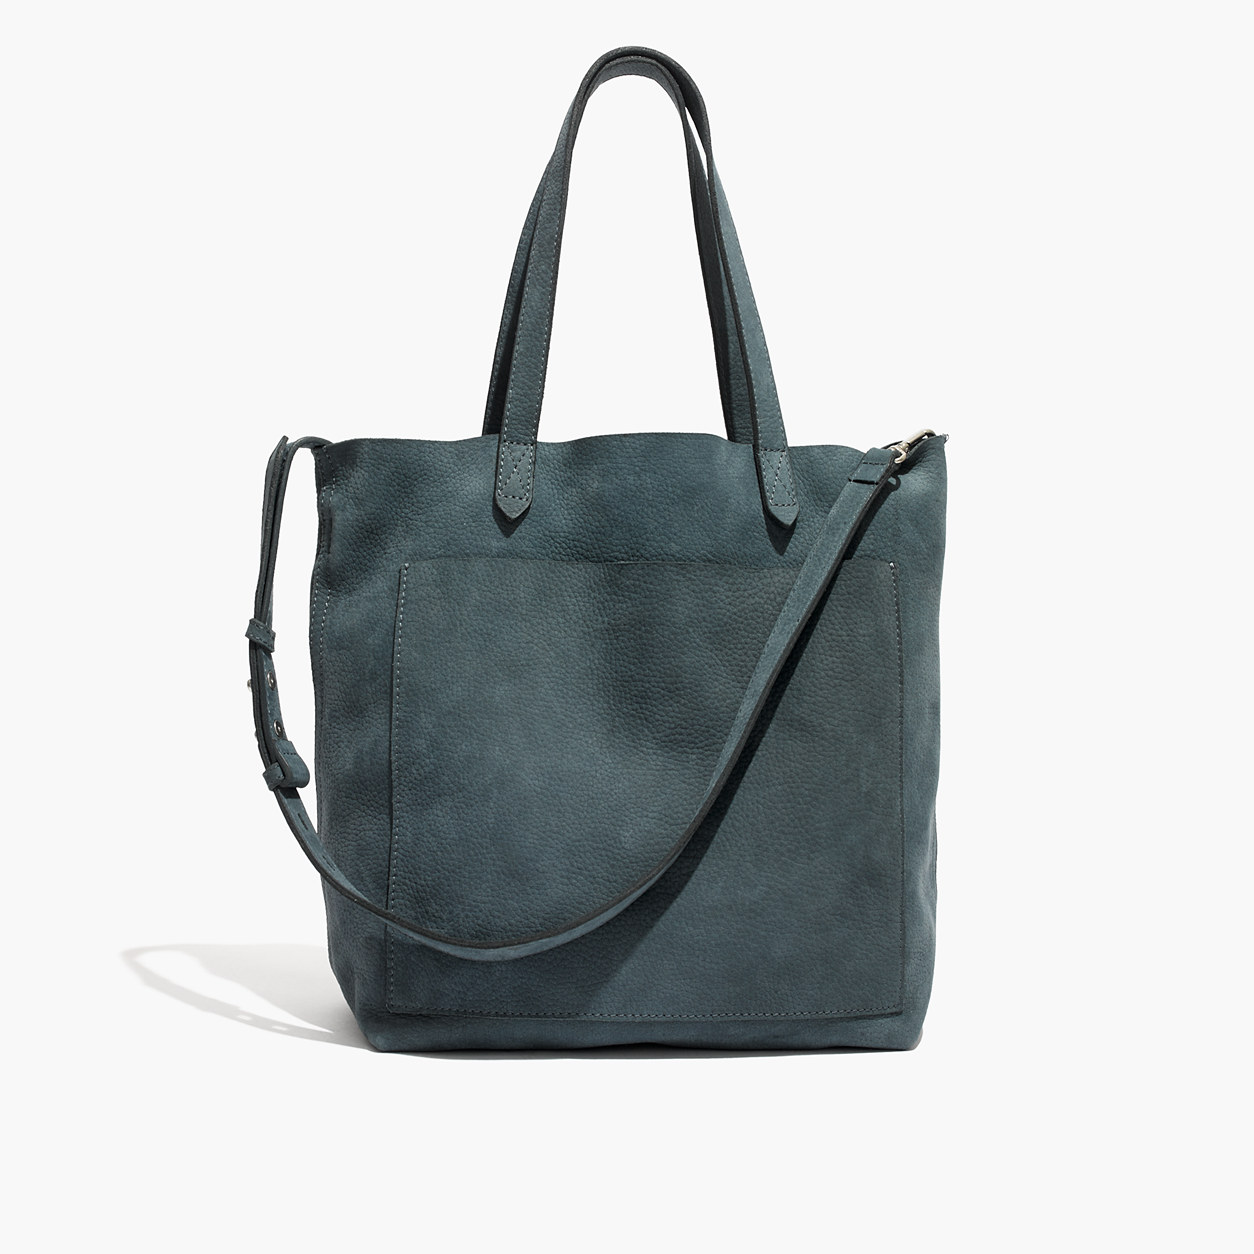 The Medium Transport Tote : totes | Madewell